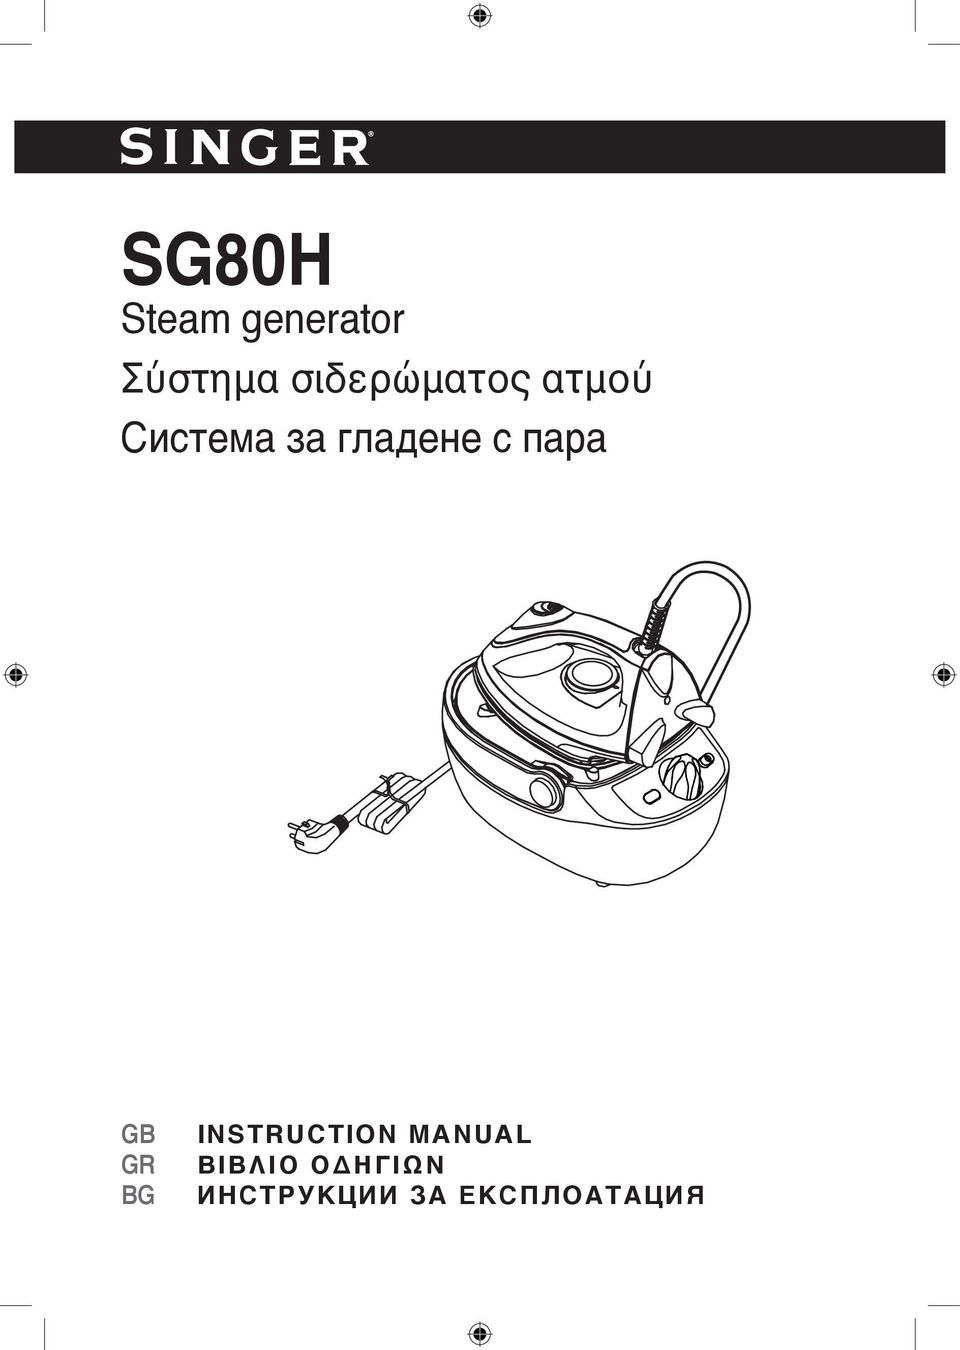 гладене с пара GB GR BG INSTRUCTION